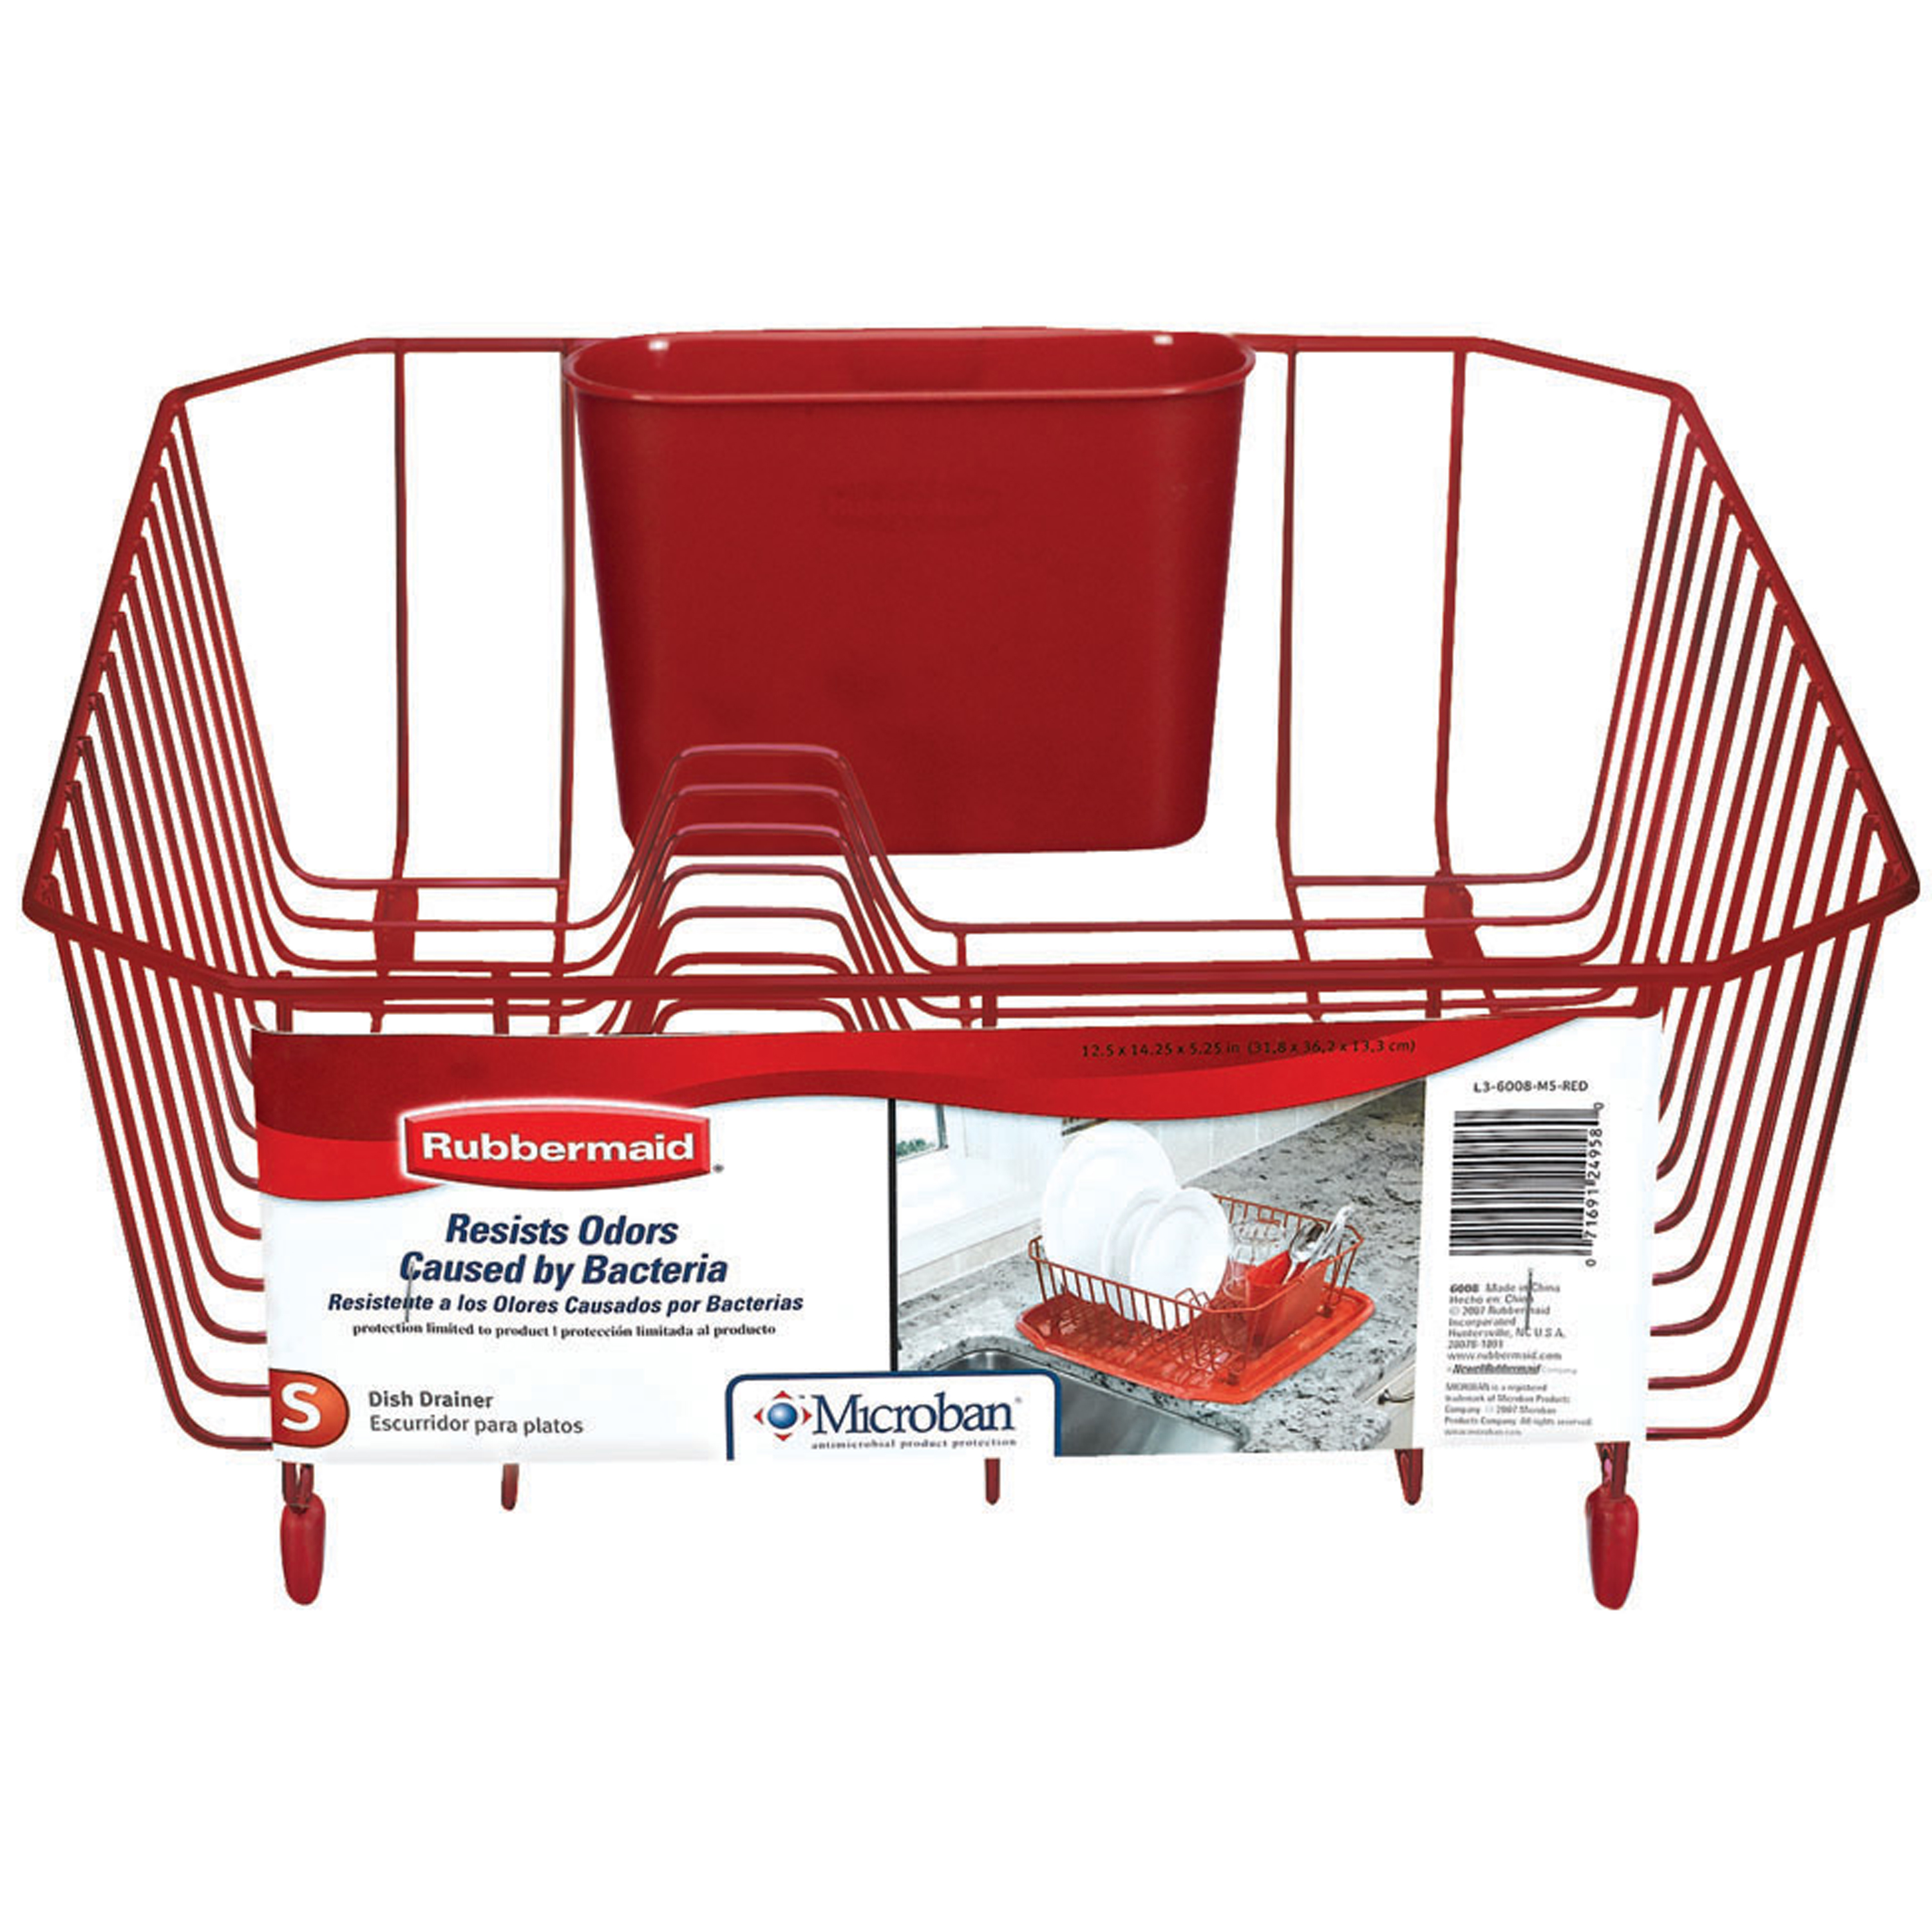 Rubbermaid Antimicrobial Dish Drainer, Small, Red